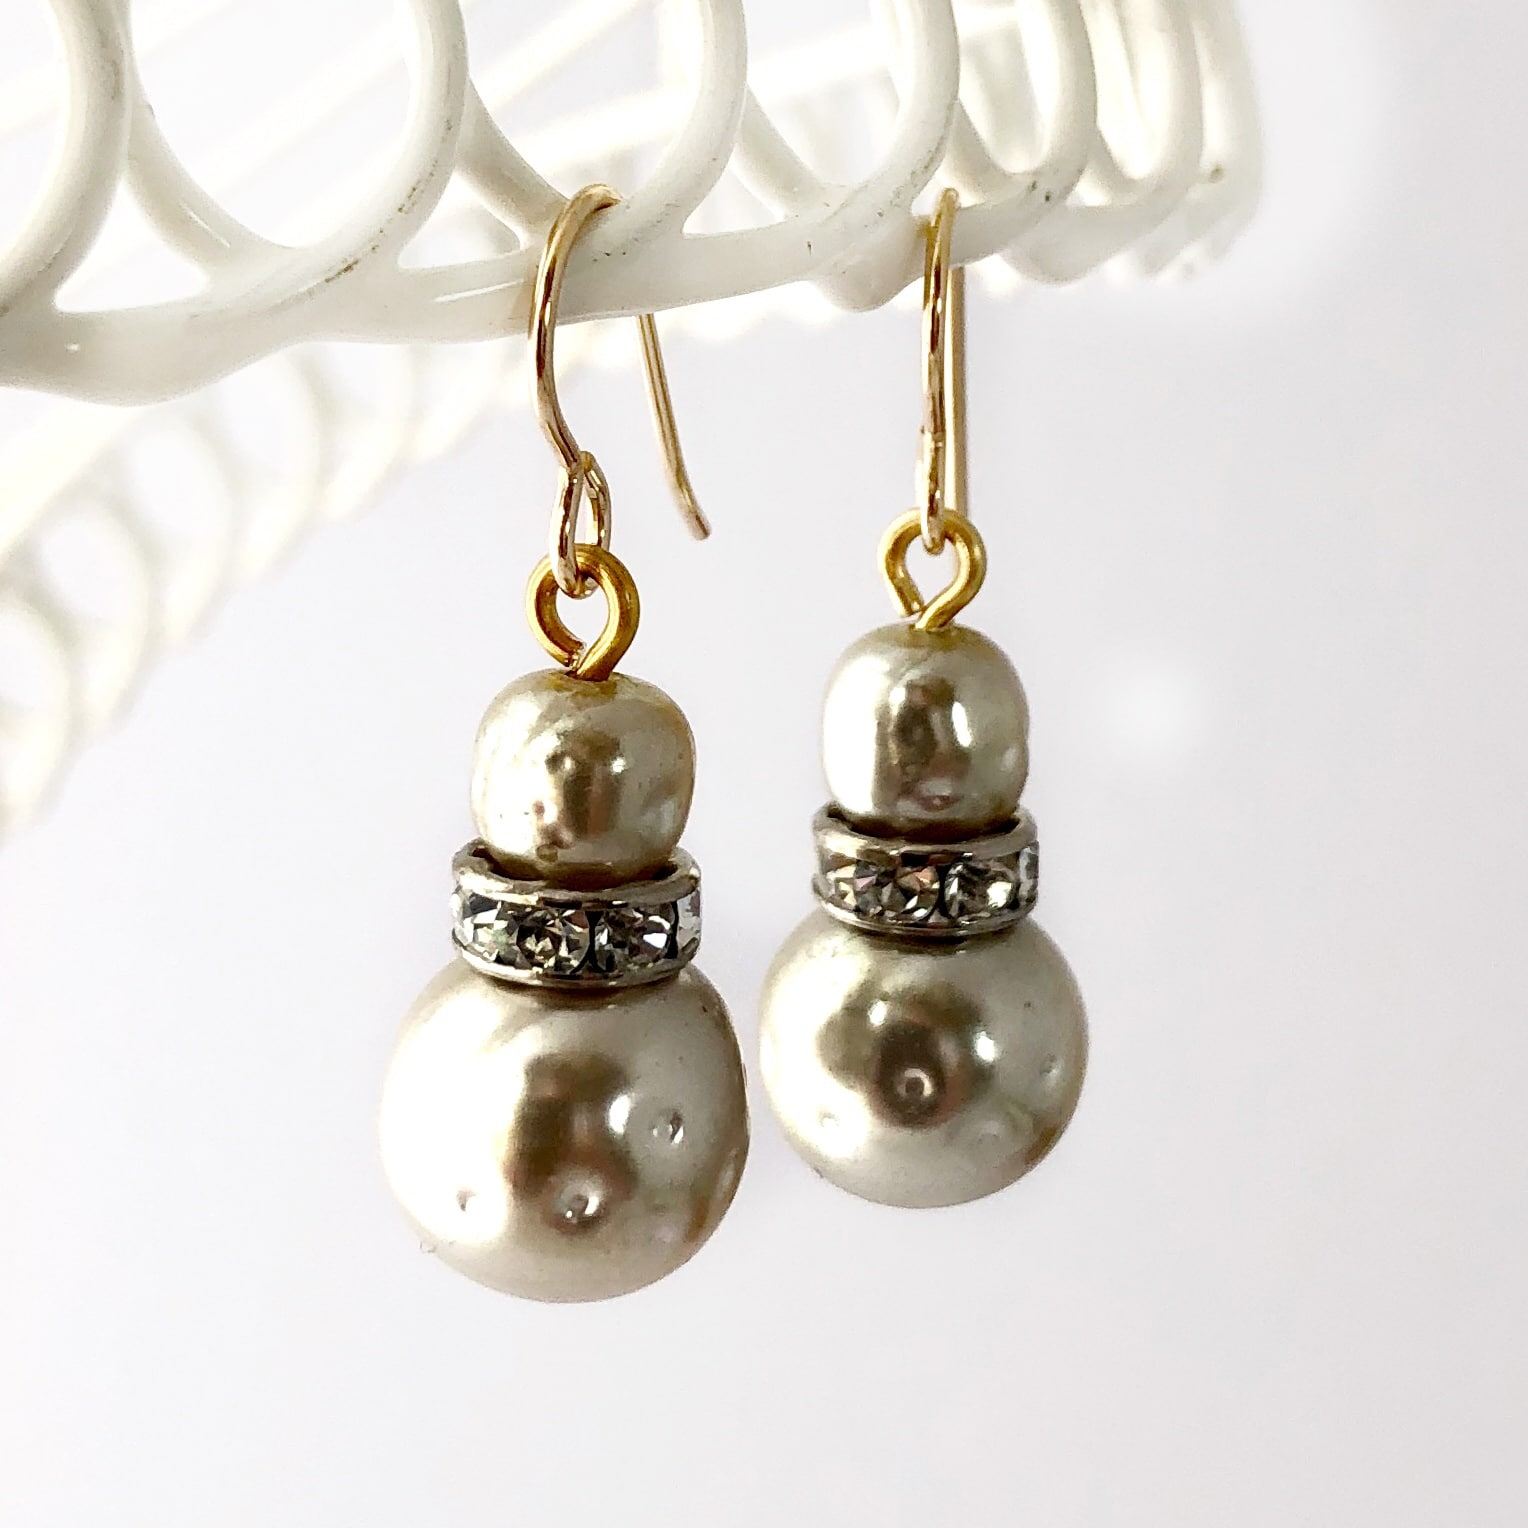 vintage-baroque-pearl-bead-earrings-by-my-vintage-obsession-by-myvintageobsession2020